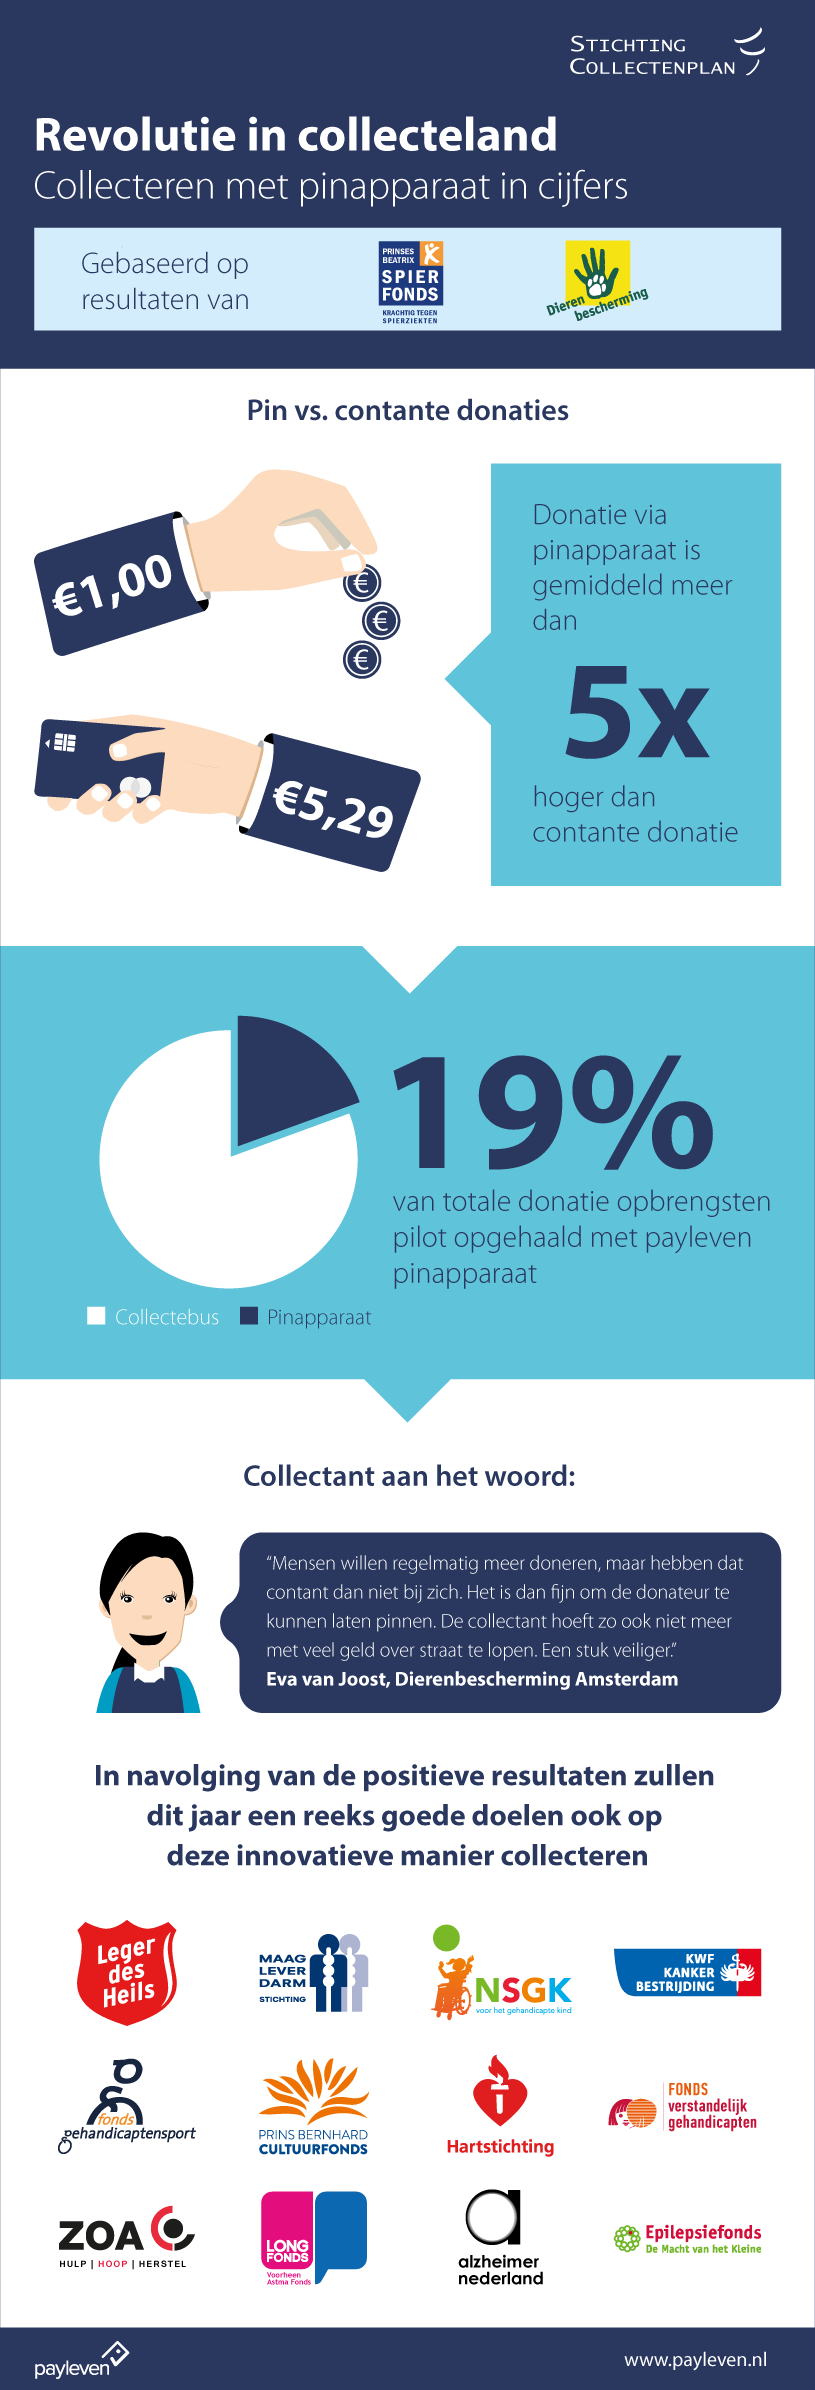 payleven_infographic